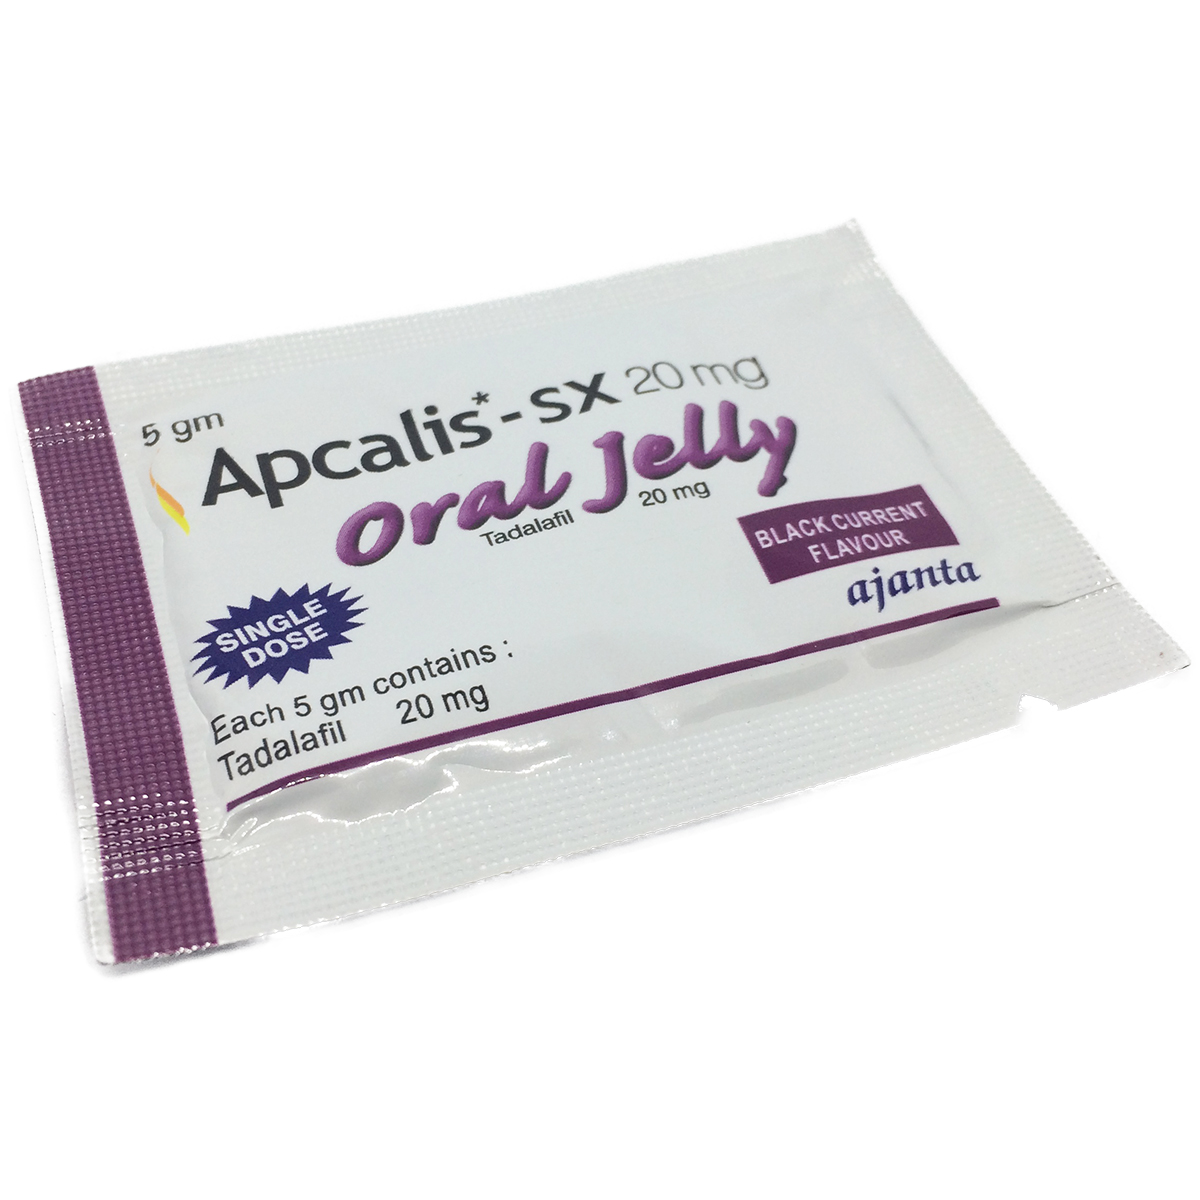 Apcalis-sx Oral Jelly x 35 шт